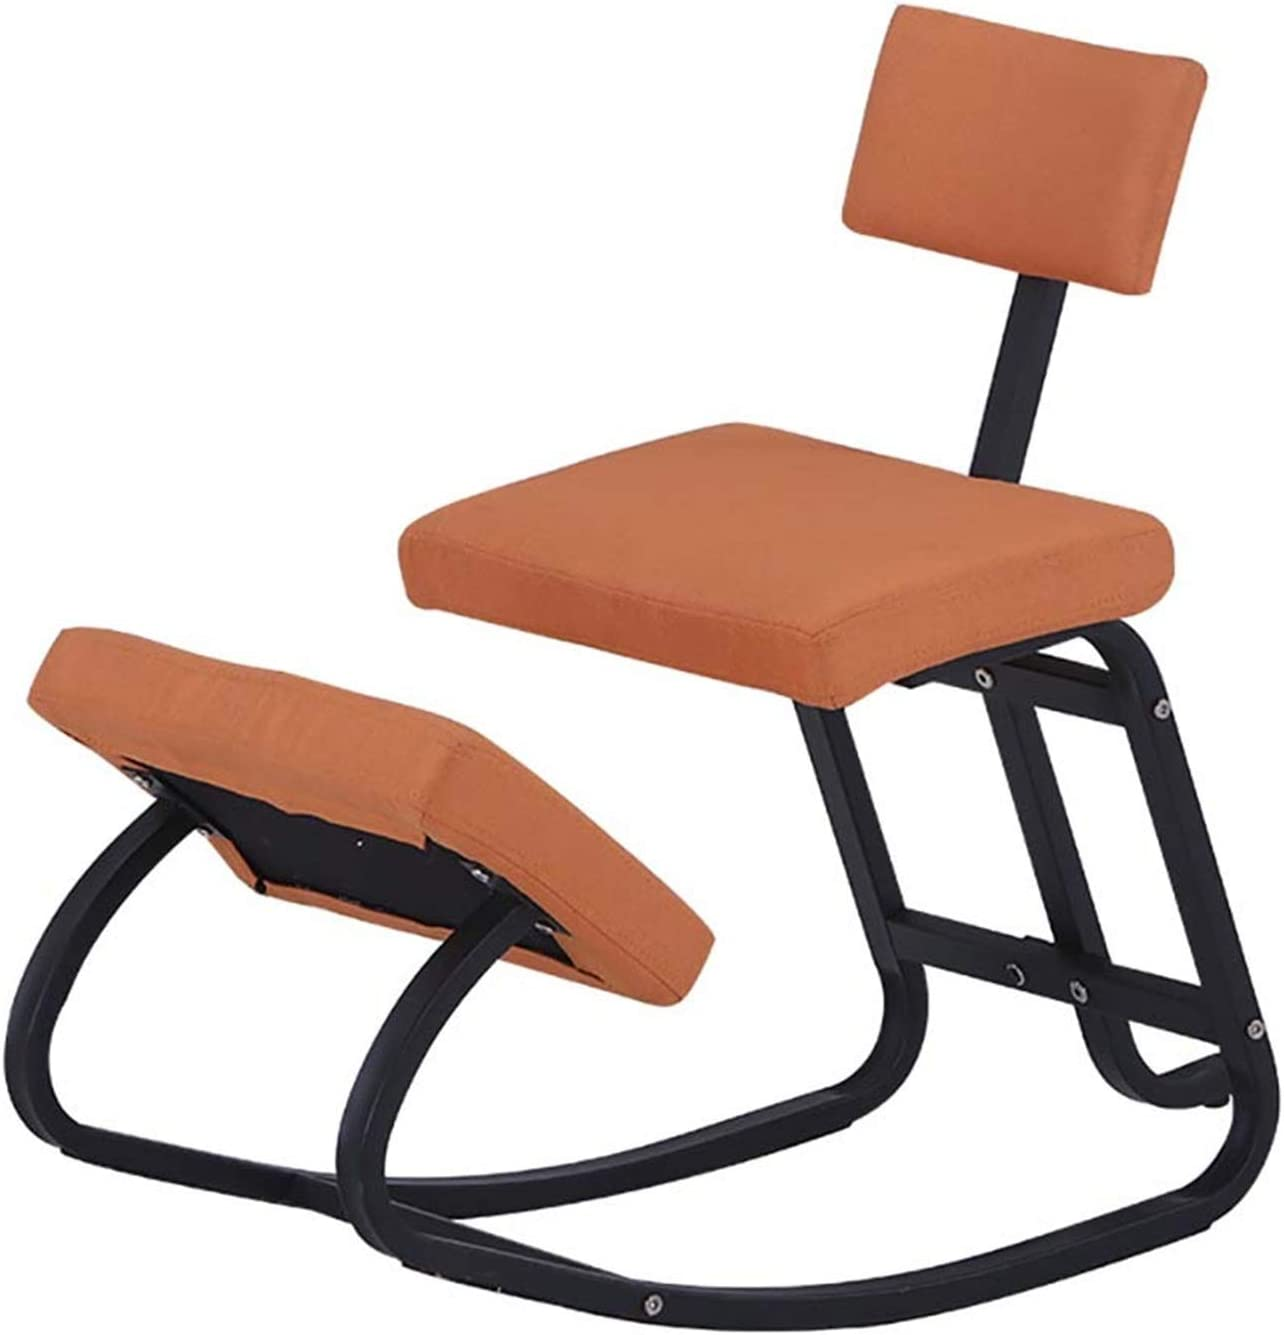 zjyfyfyf Office Ergonomic Max 47% OFF Kneeling Chair Relie shopping for Stool Perfect